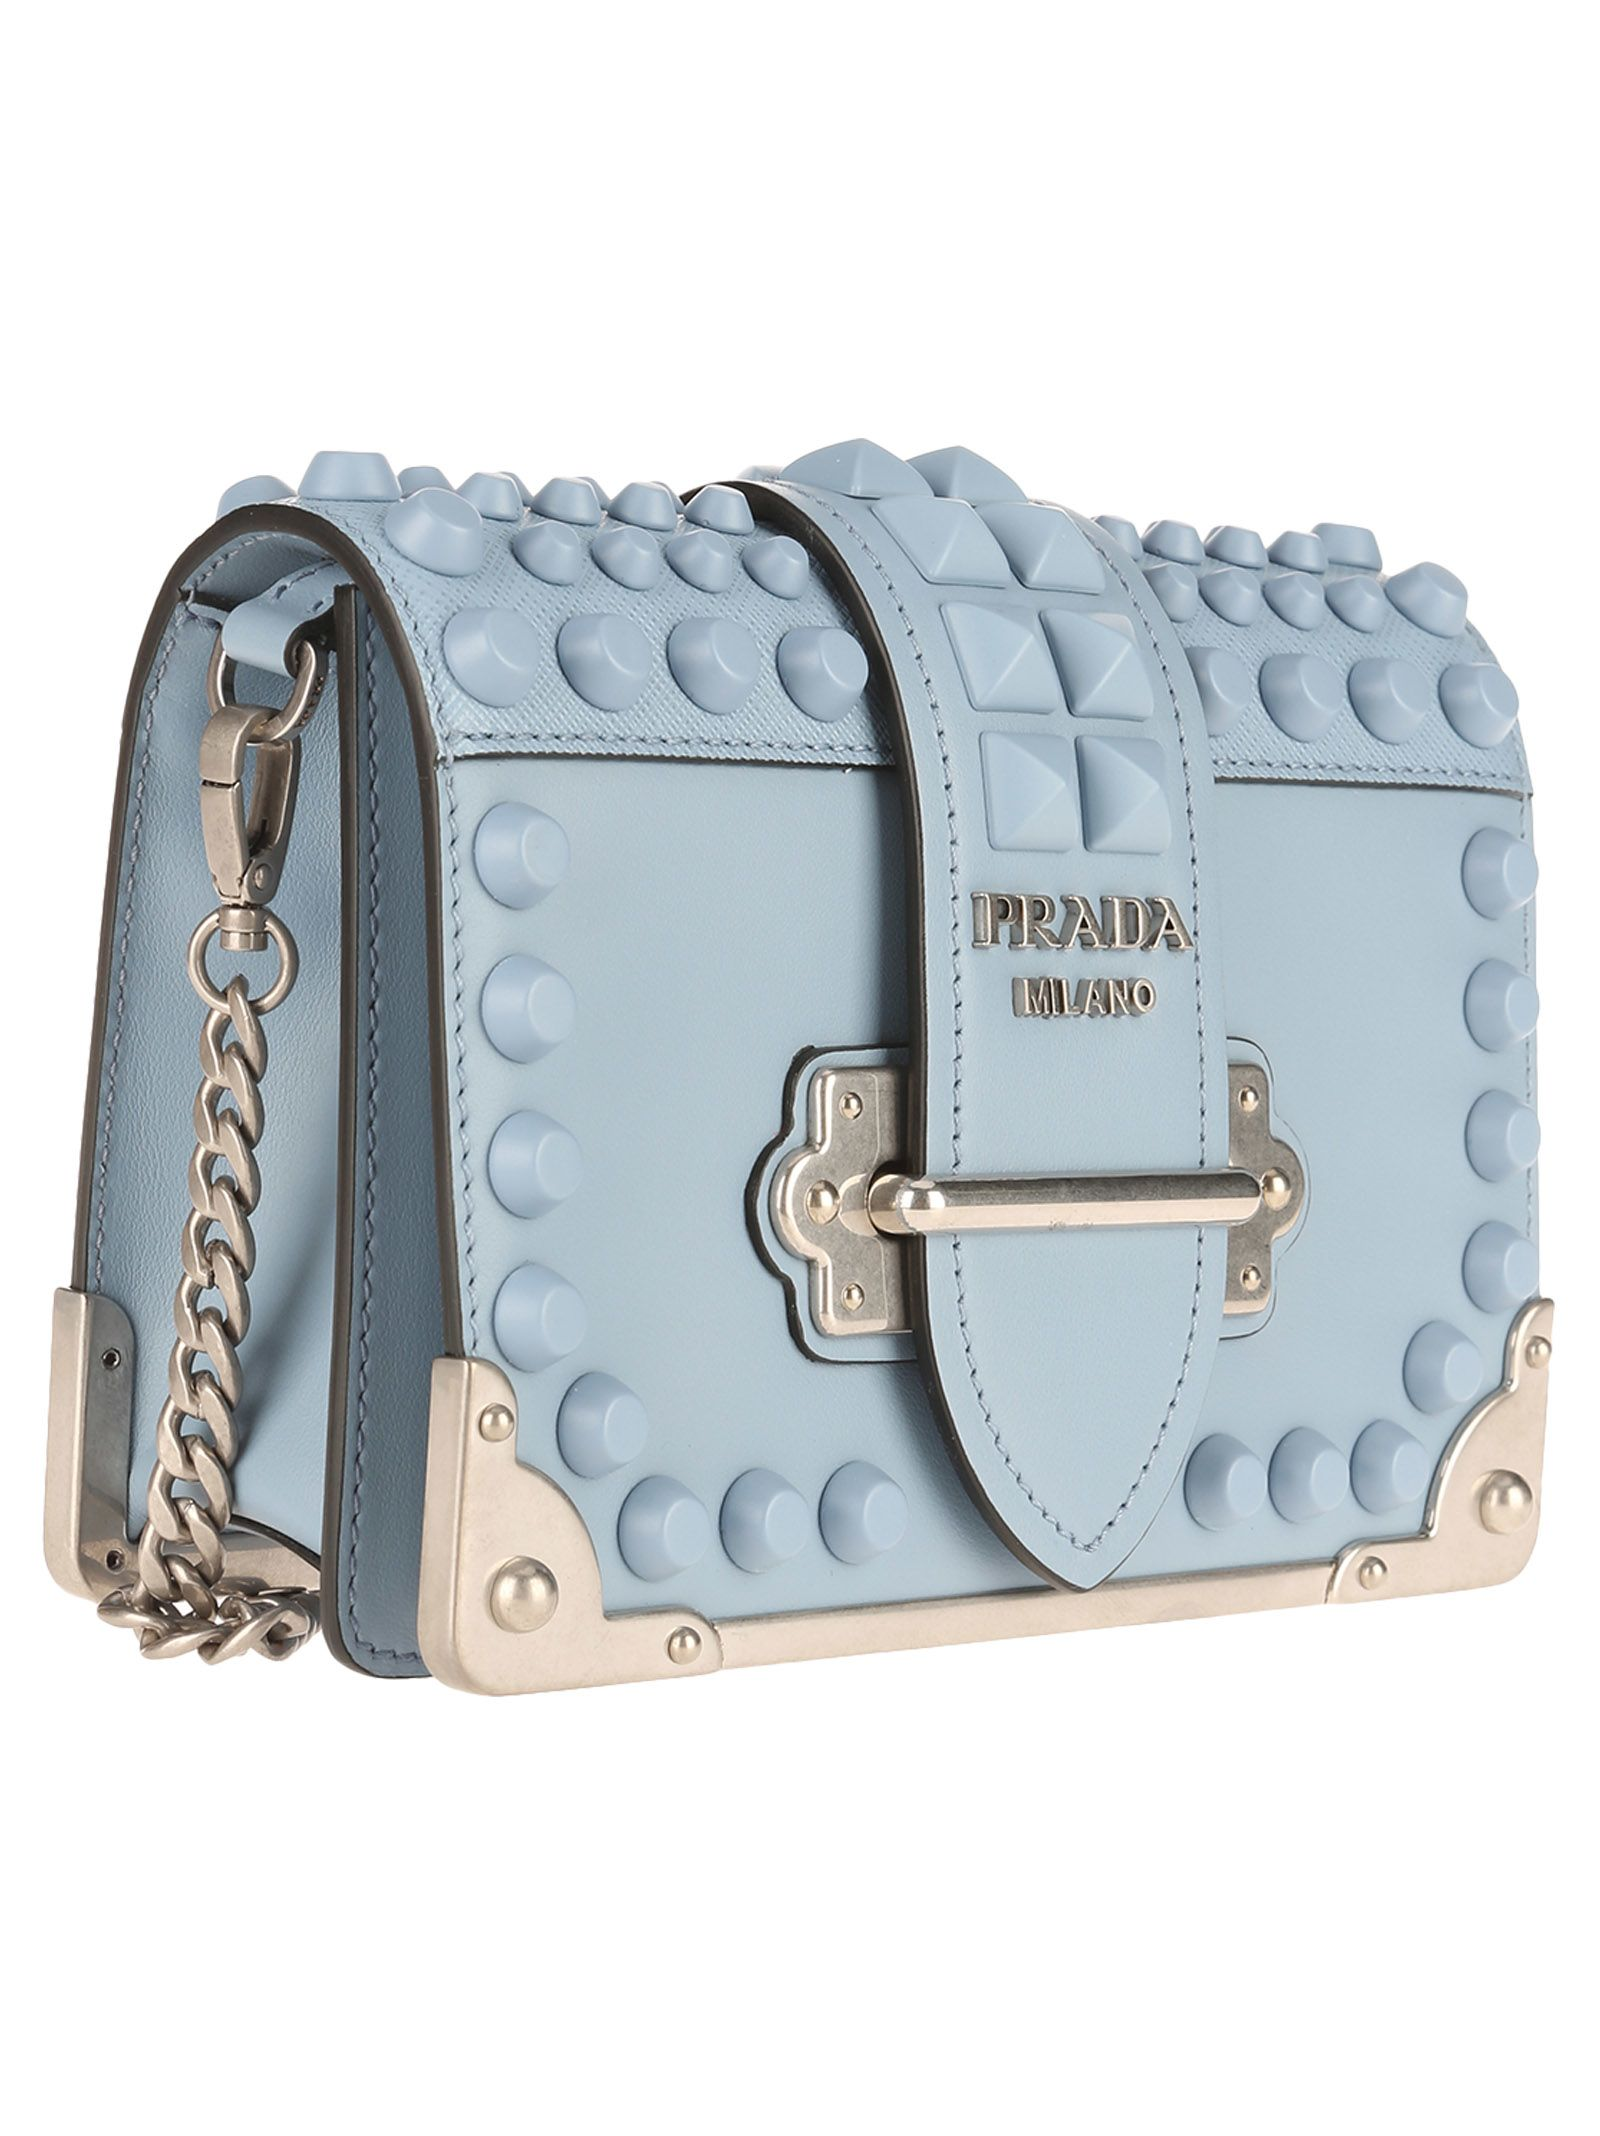 ac6f5b44599f Prada Cahier Bag Light Blue | Stanford Center for Opportunity Policy ...